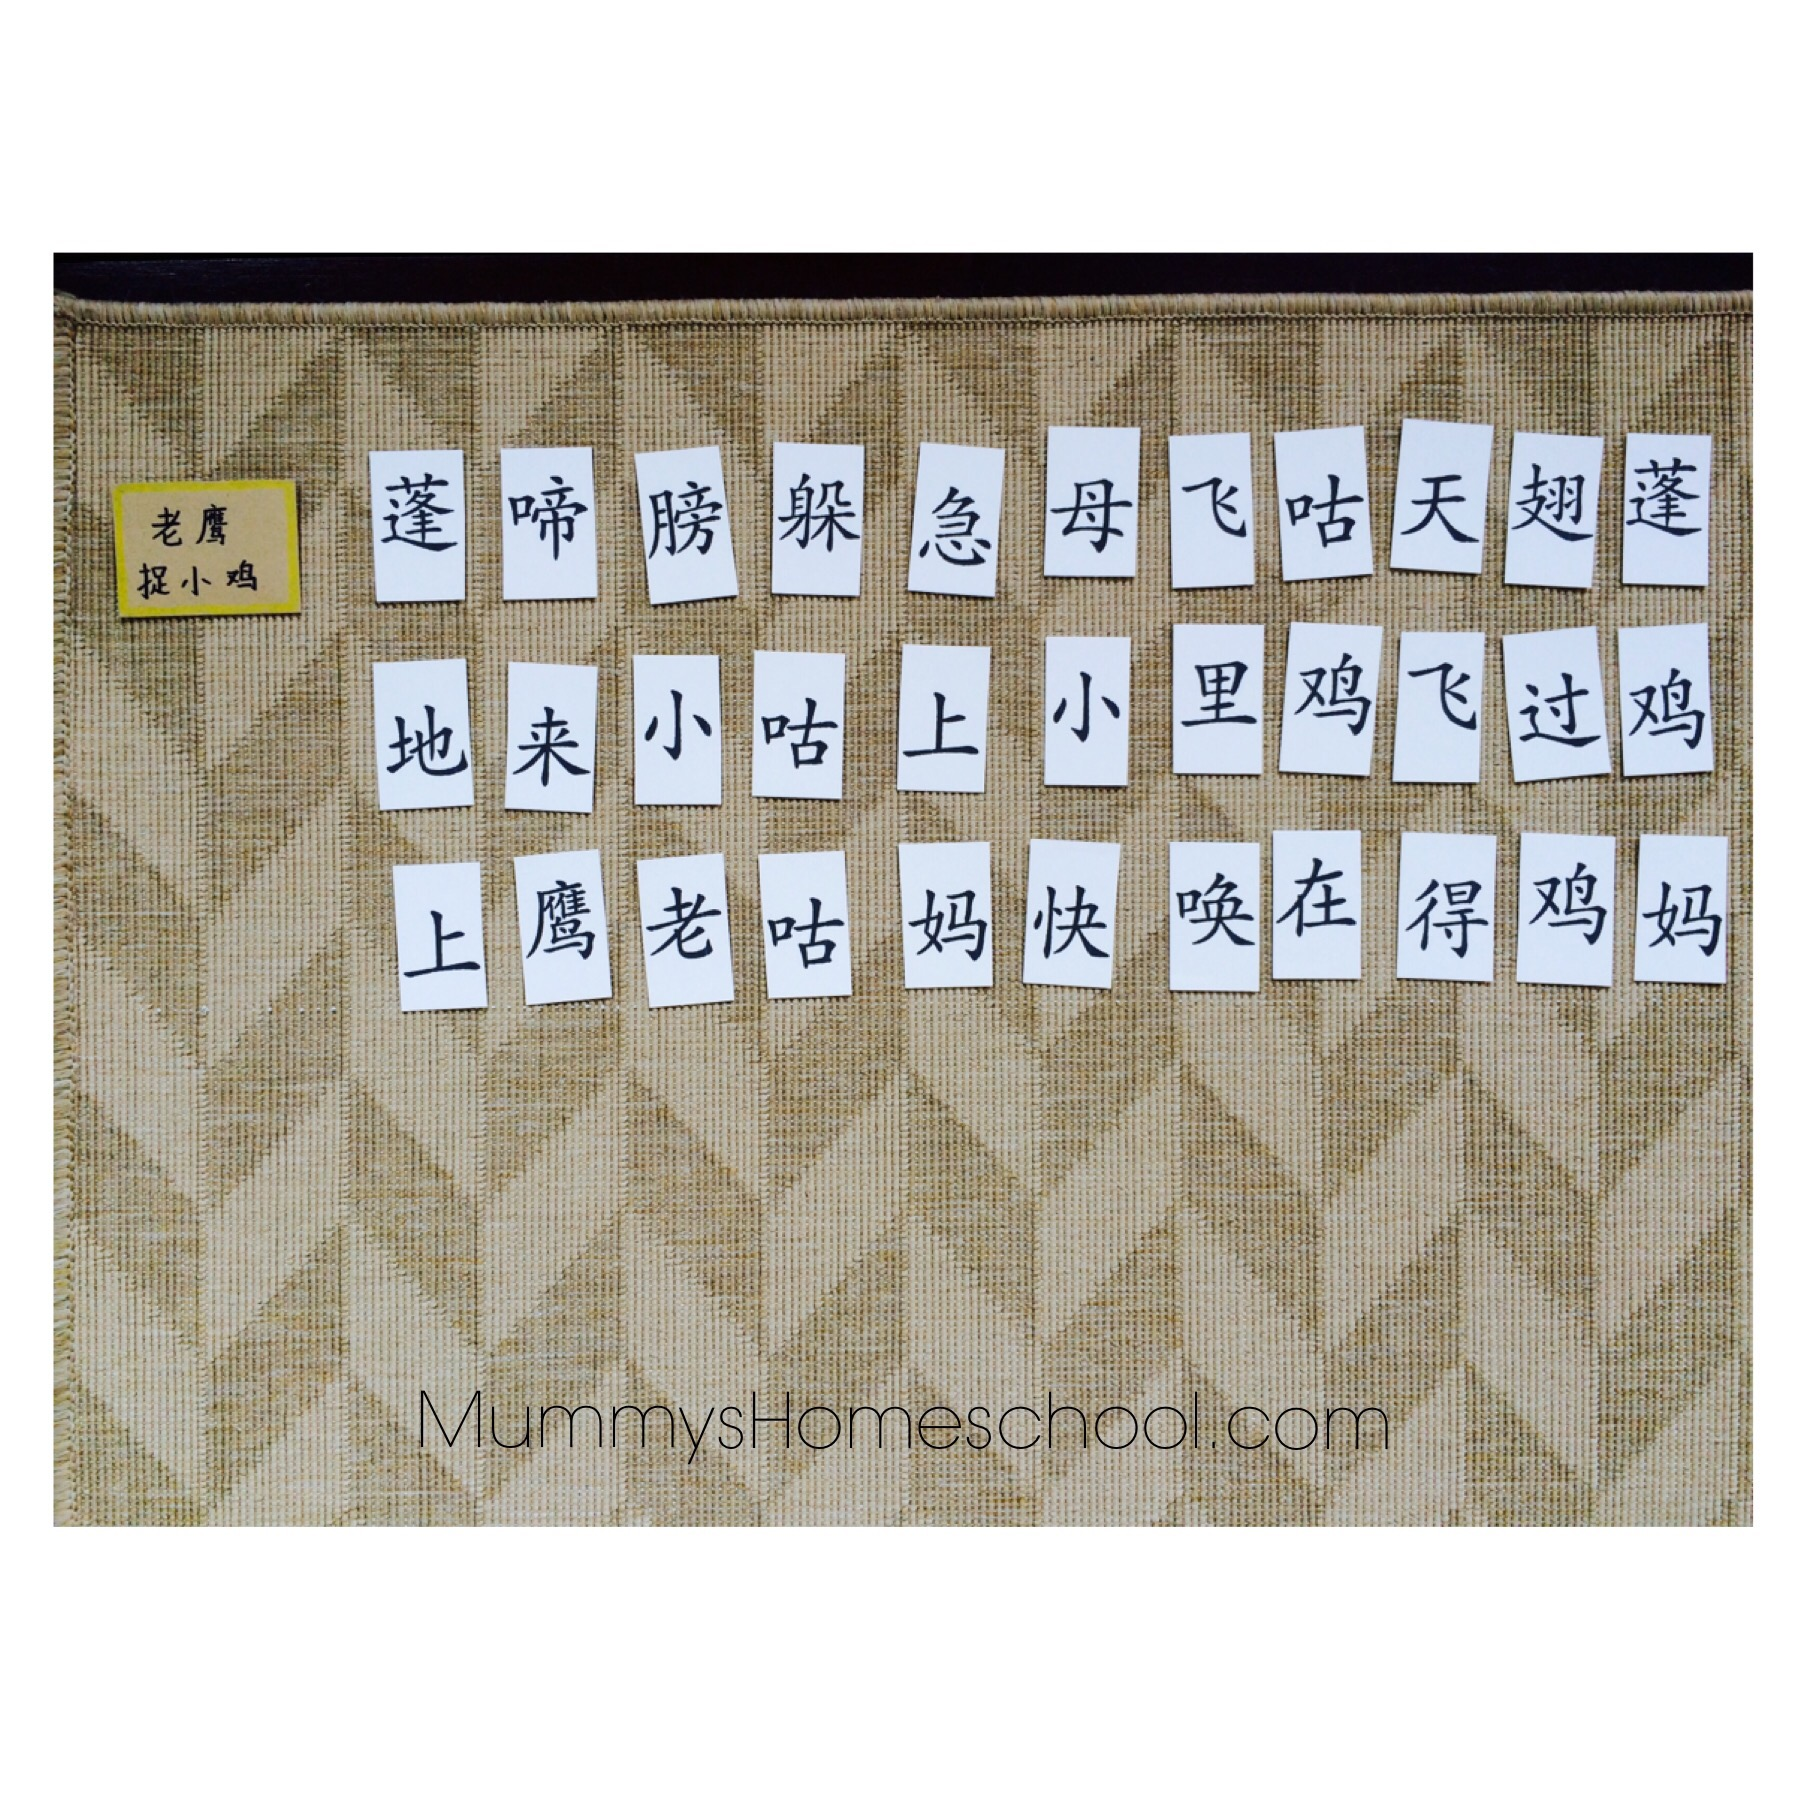 Chinese reading activities song word cards